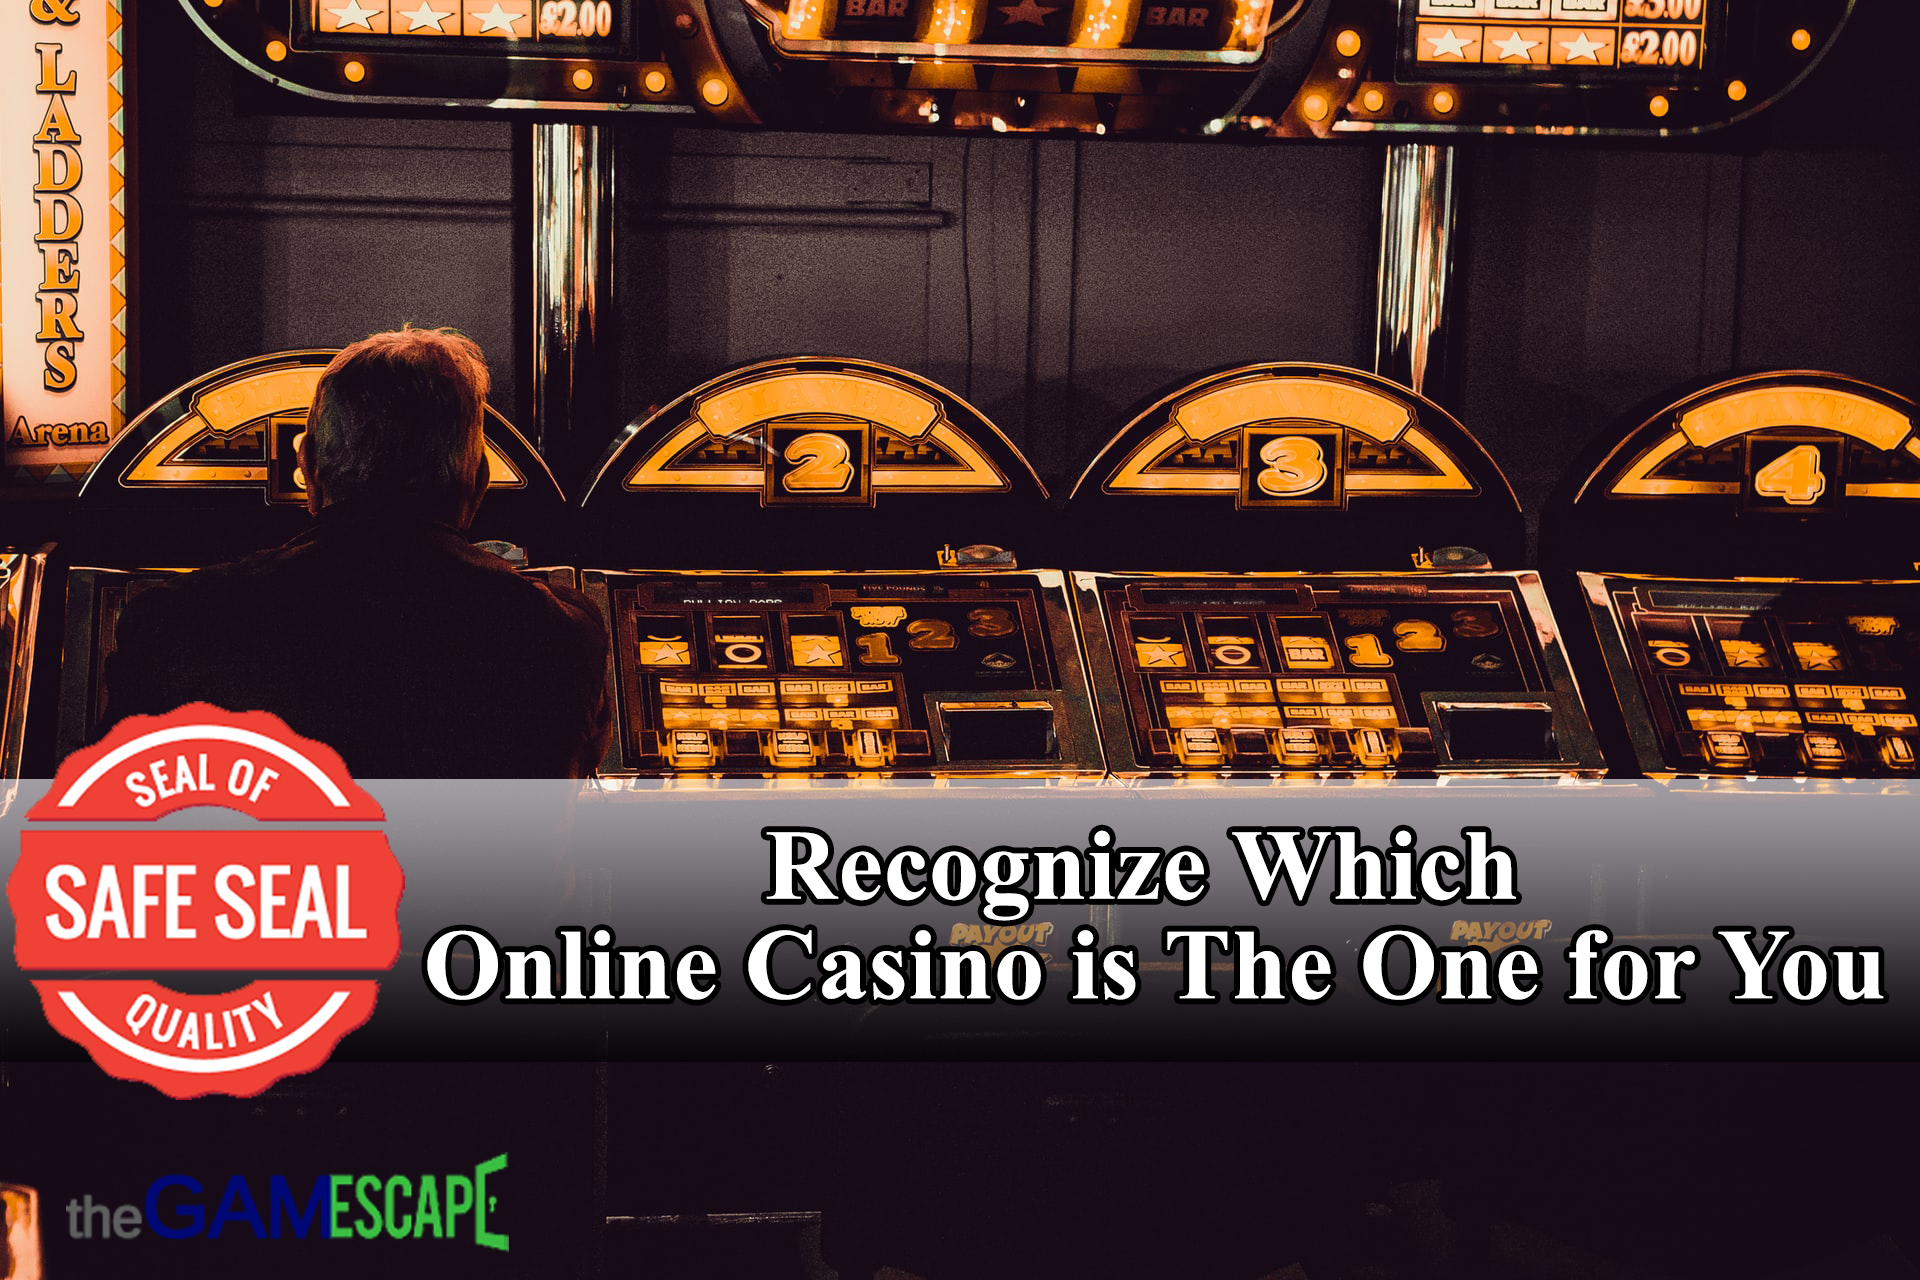 Recognize Which Online Casino is The One for You